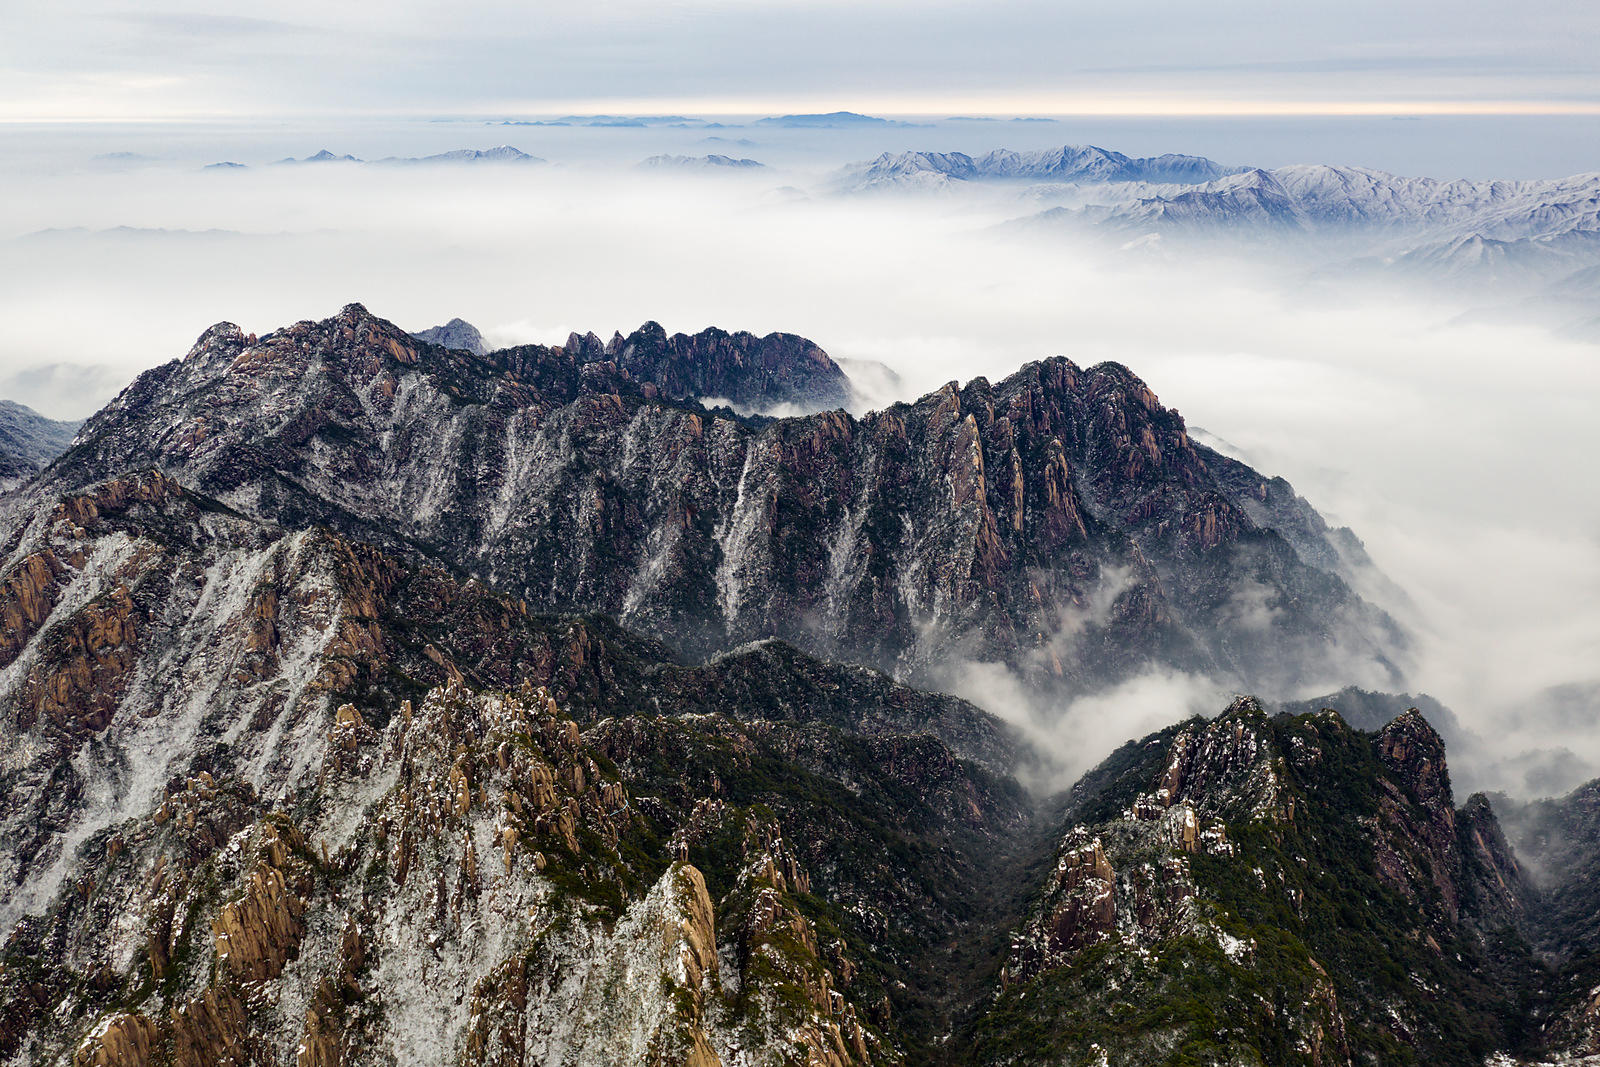 Aerial View of the Huangshan Mountains and a Sea of Mist